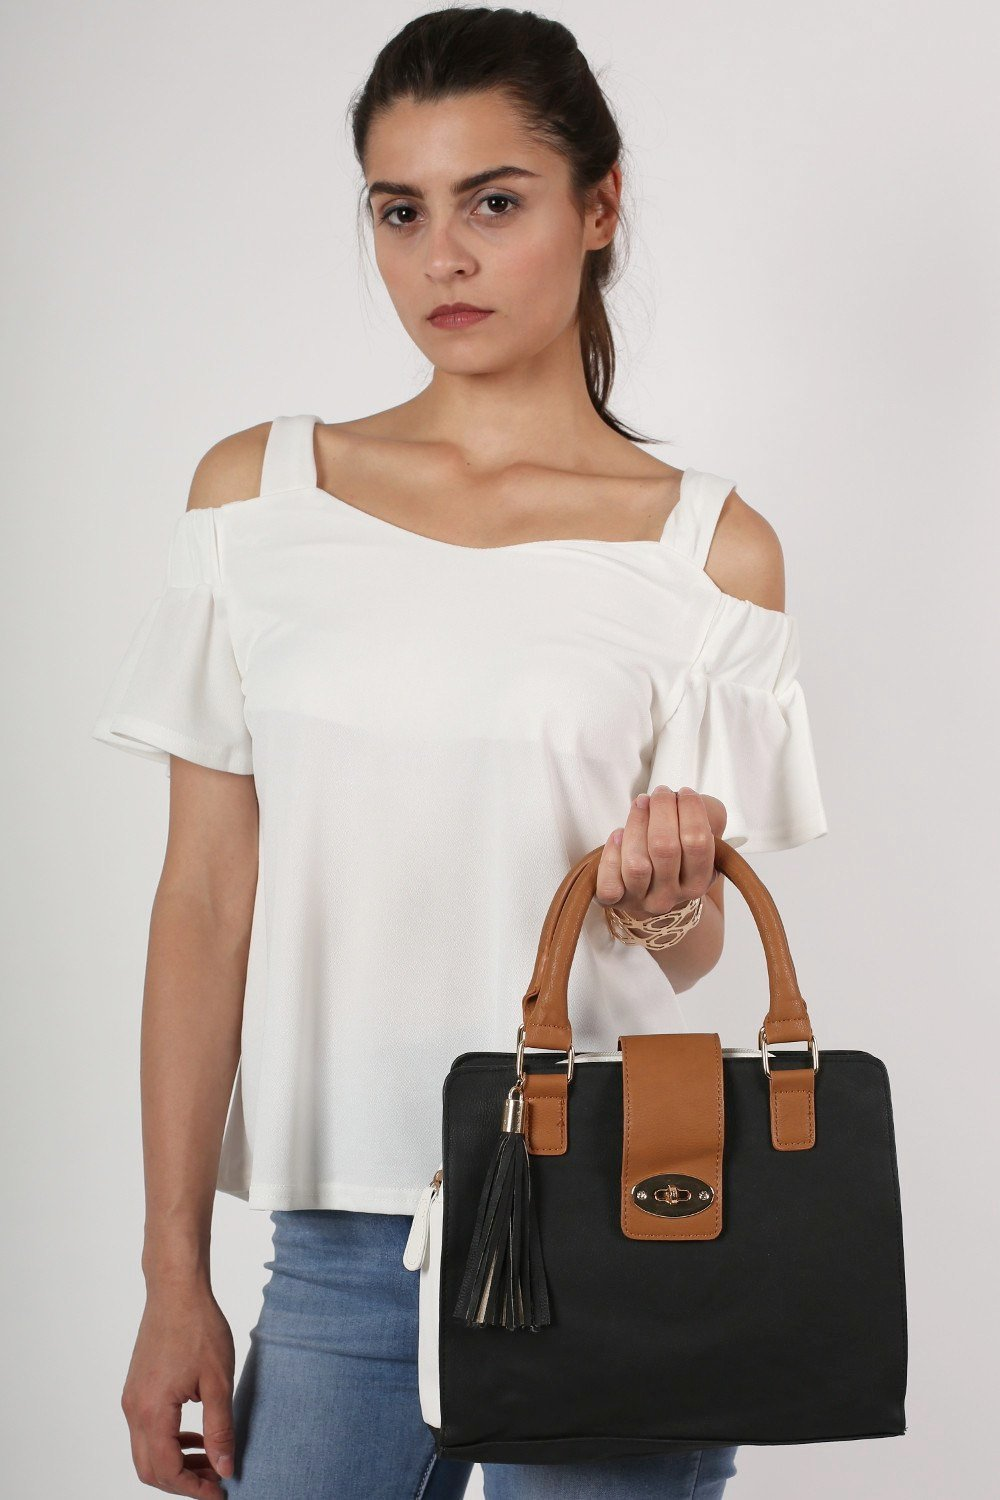 Colour Block Structured Bag in Black 0